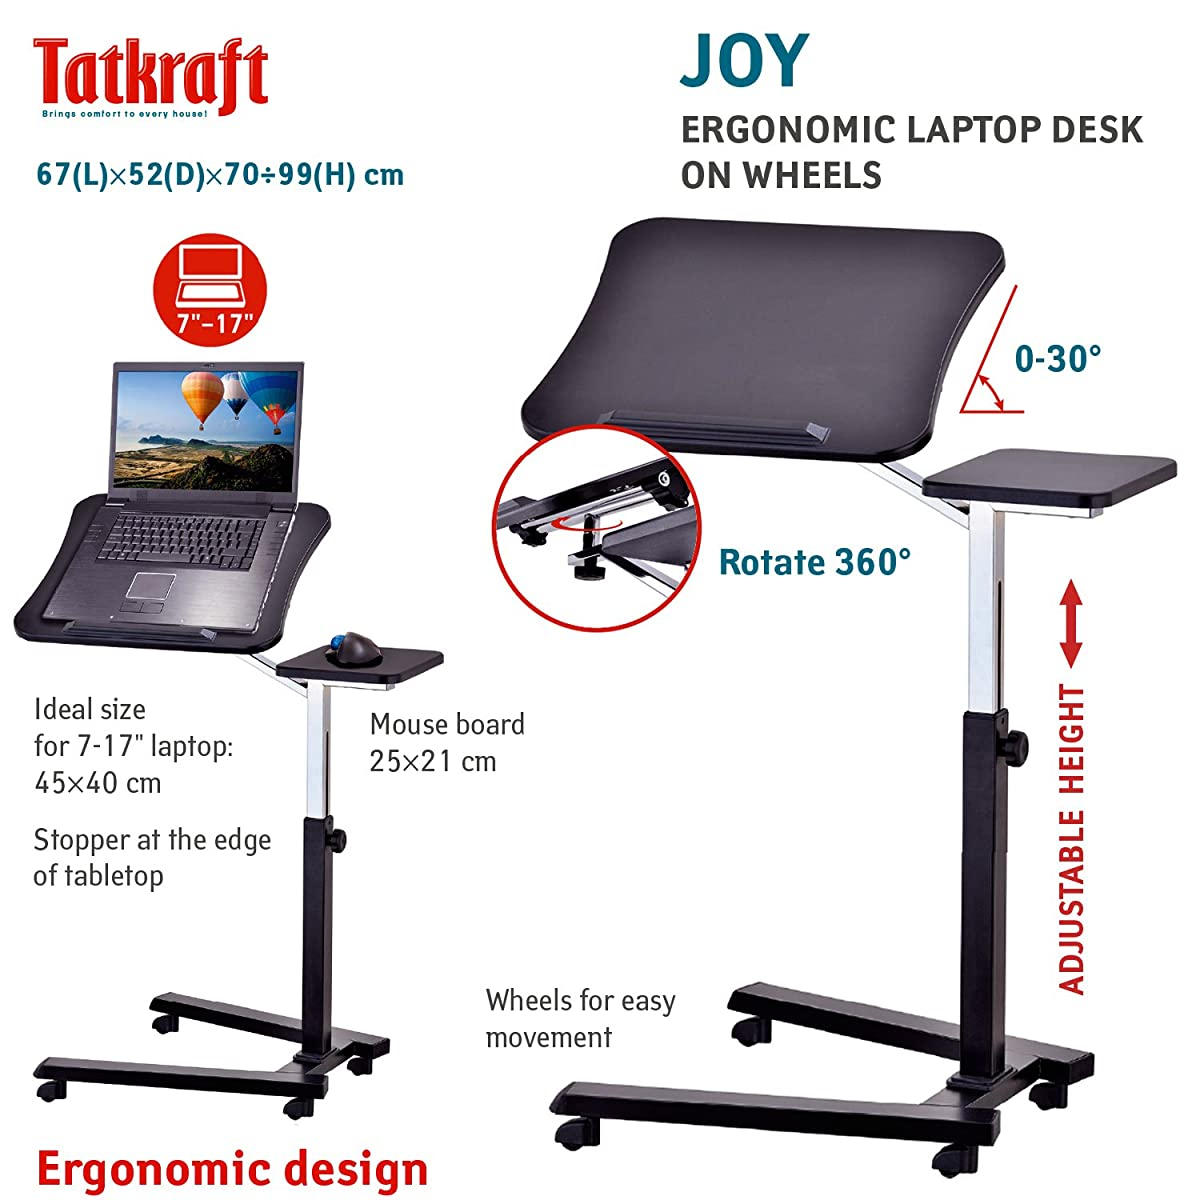 Tatkraft Joy Portable Adjustable Folding Laptop Stand Table Black